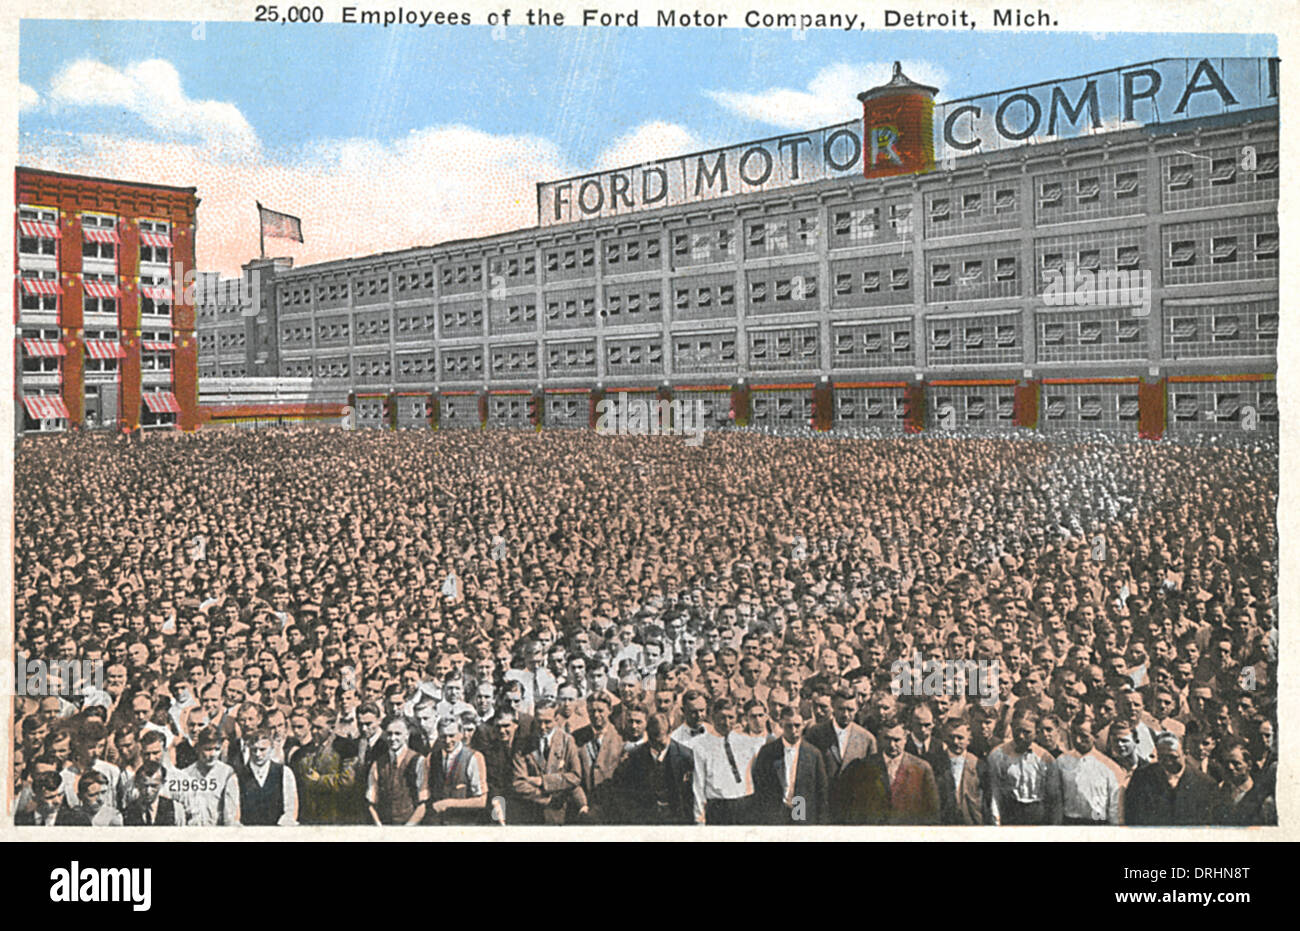 Employees ford motor company detroit michigan usa for Ford motor company usa